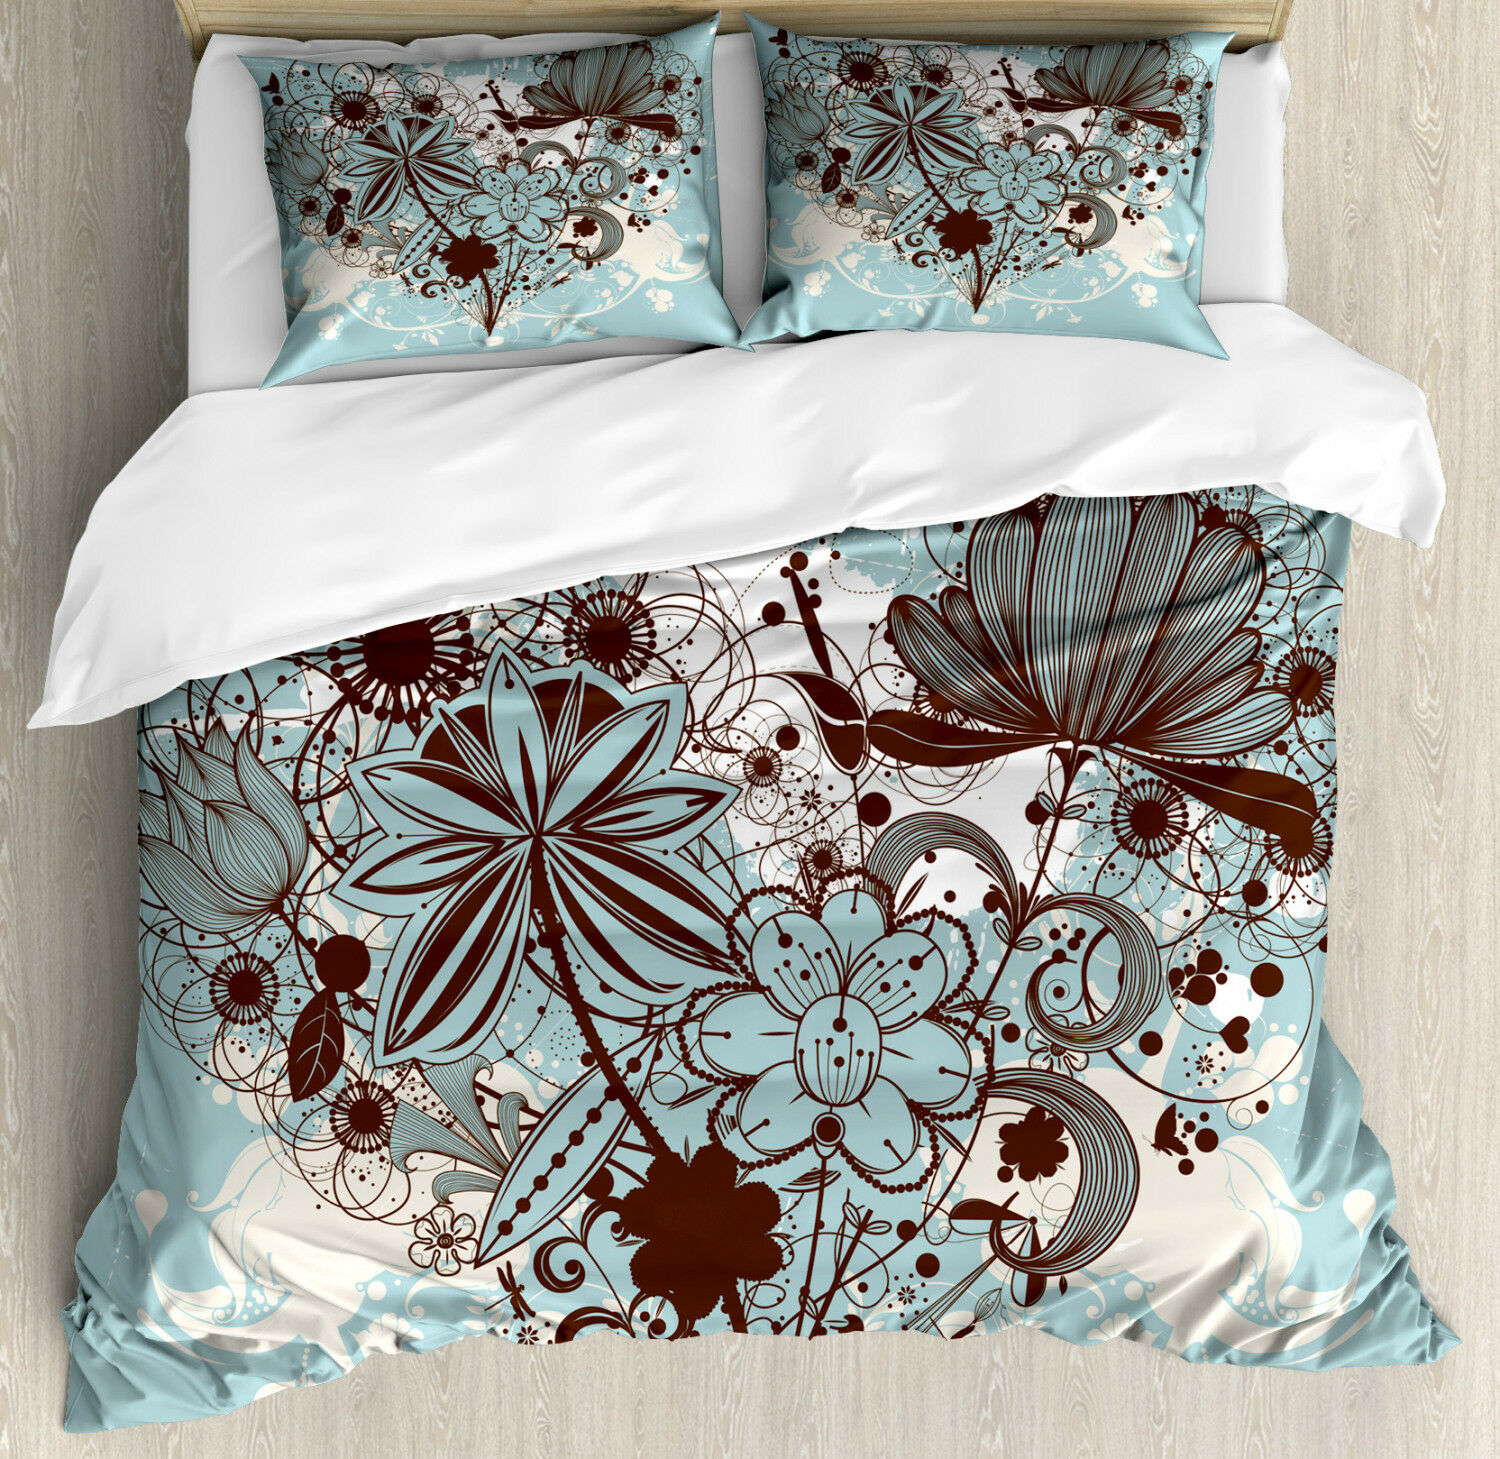 Grunge Duvet Cover Set with Pillow Shams Swirls and Petal Retro Print